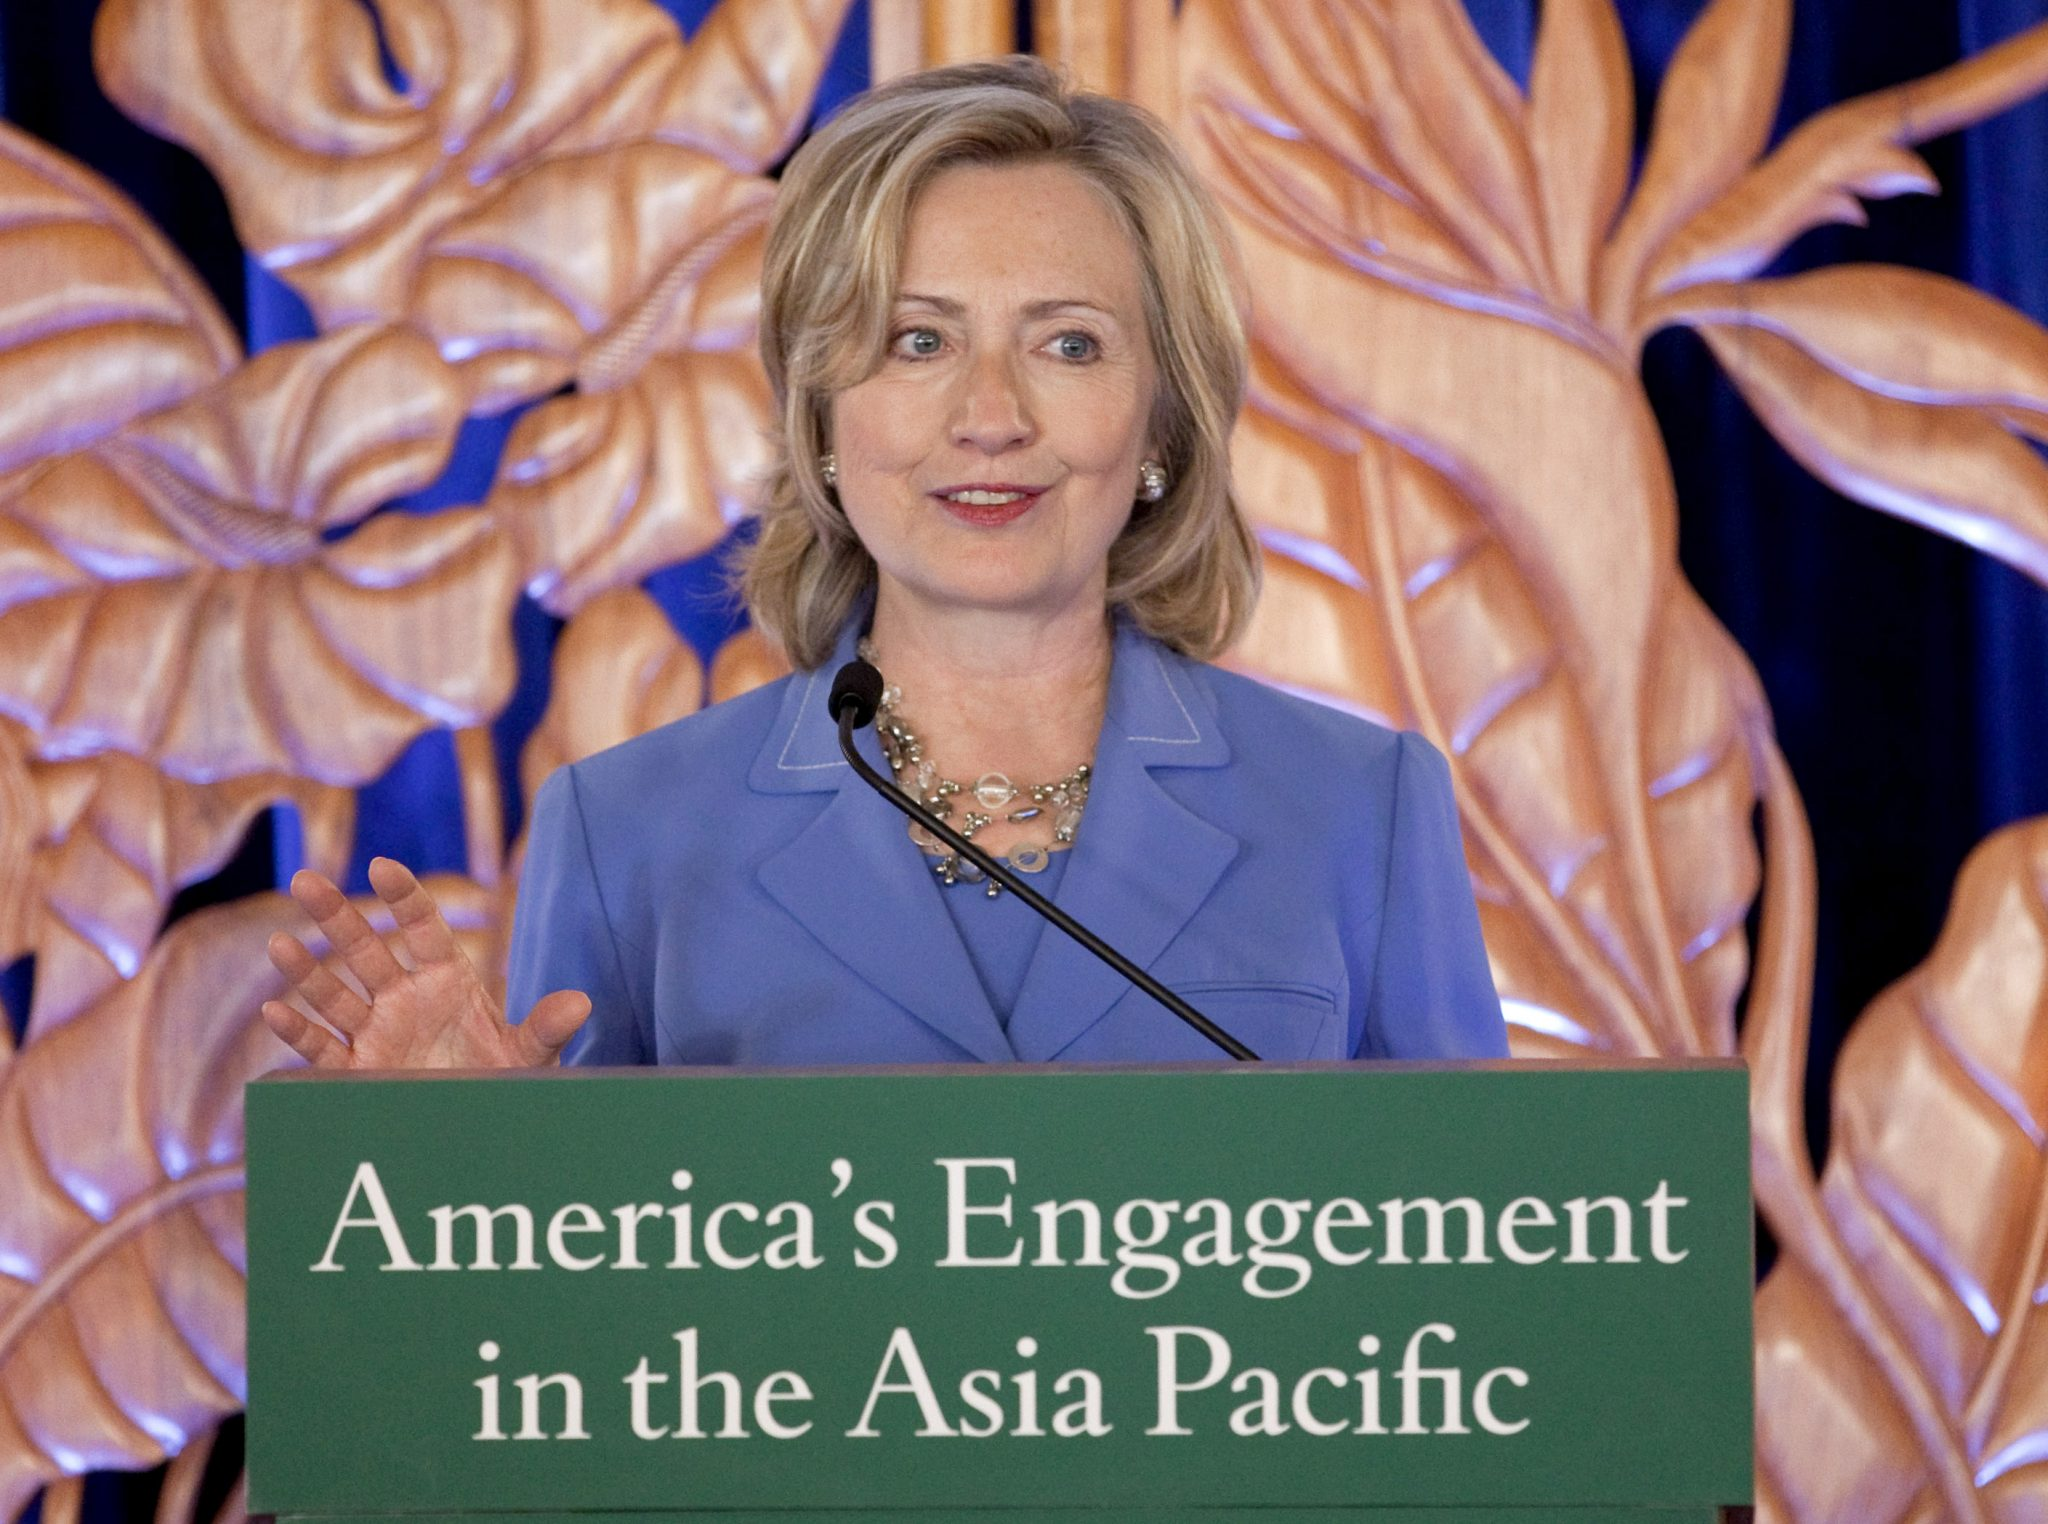 Secretary of State Hillary Rodham Clinton discusses America's engagement in the Asia-Pacific region, Thursday, Oct. 28, 2010, in Honolulu, Hawaii. (Photo: AAP)